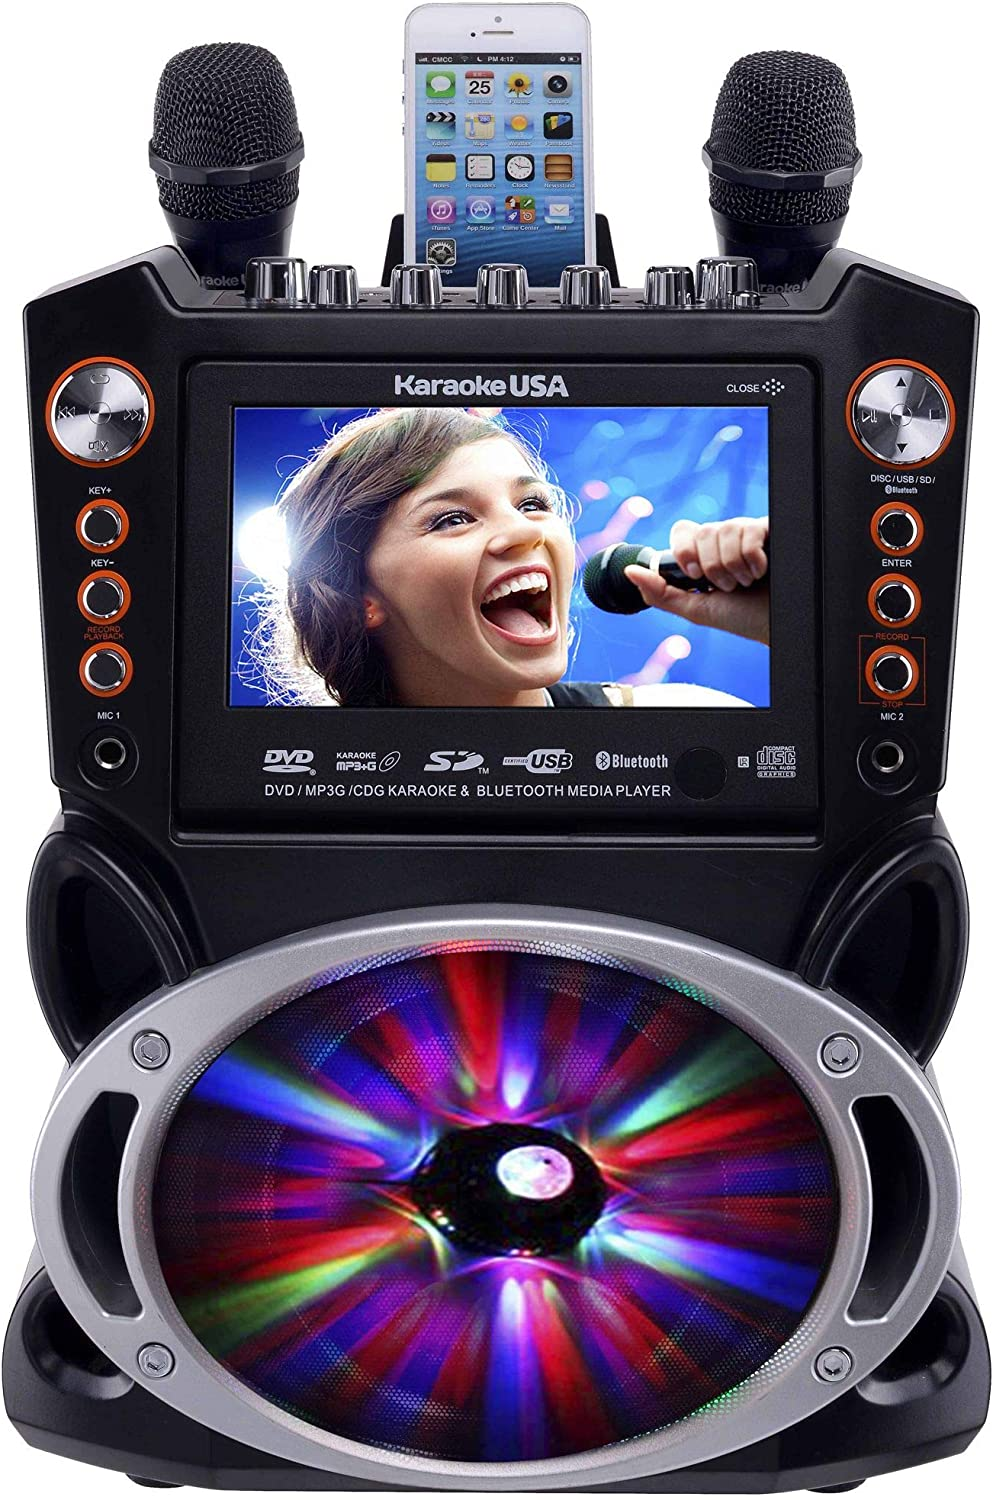 "Karaoke USA GF846 DVD/CDG/MP3G Karaoke Machine with 7"" TFT Color Screen, Record, Bluetooth and LED Sync Lights"